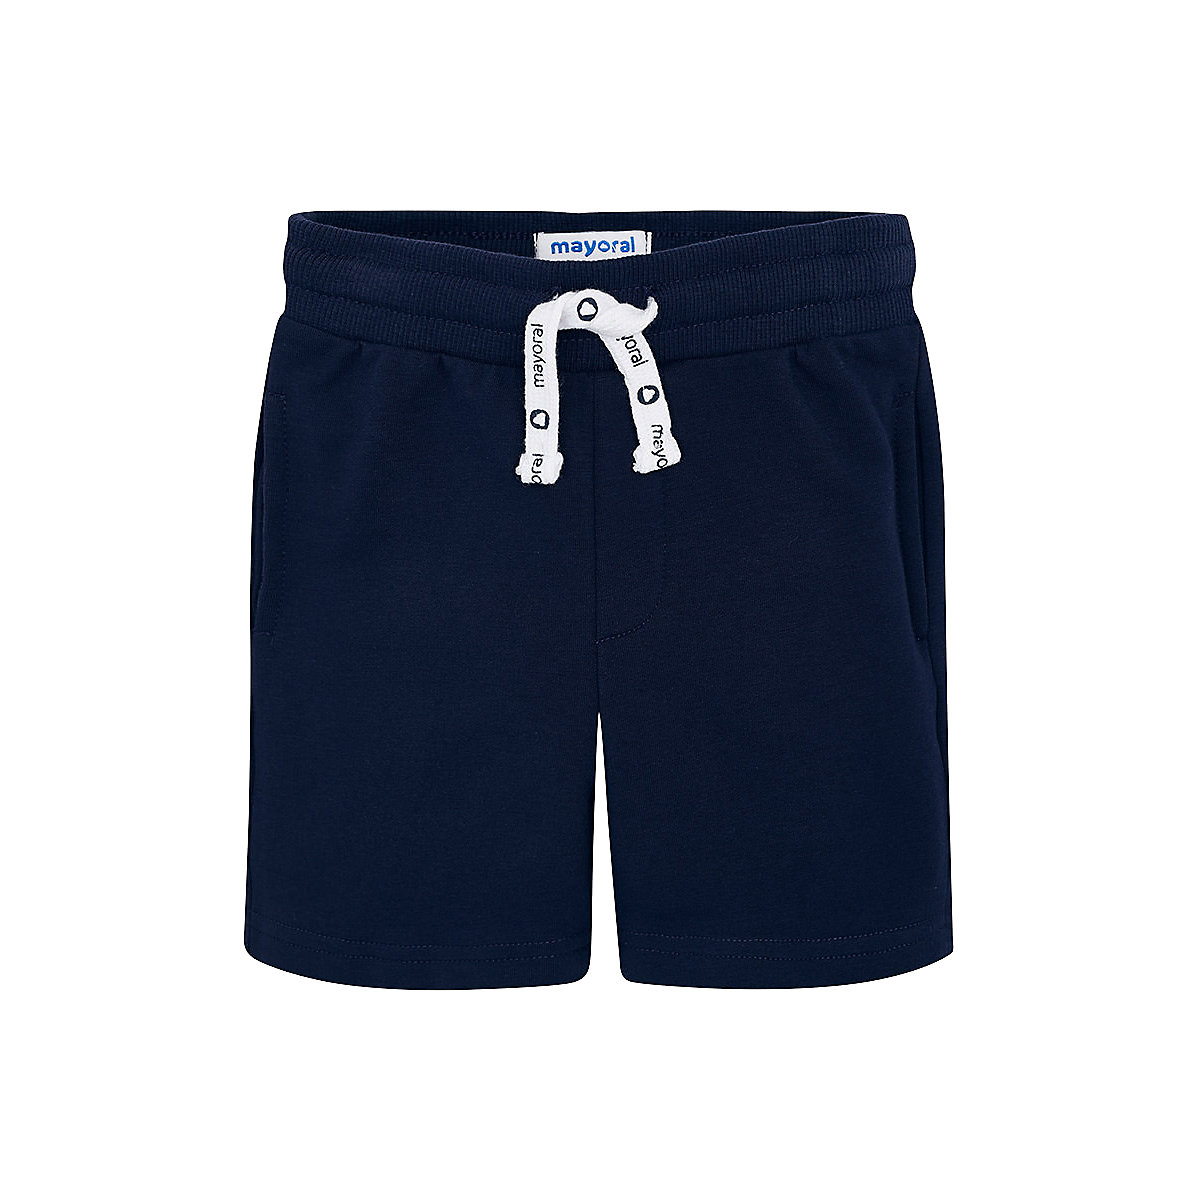 Shorts Mayoral 10692894 Children s Clothing clothes for boys with pockets briefs for kids